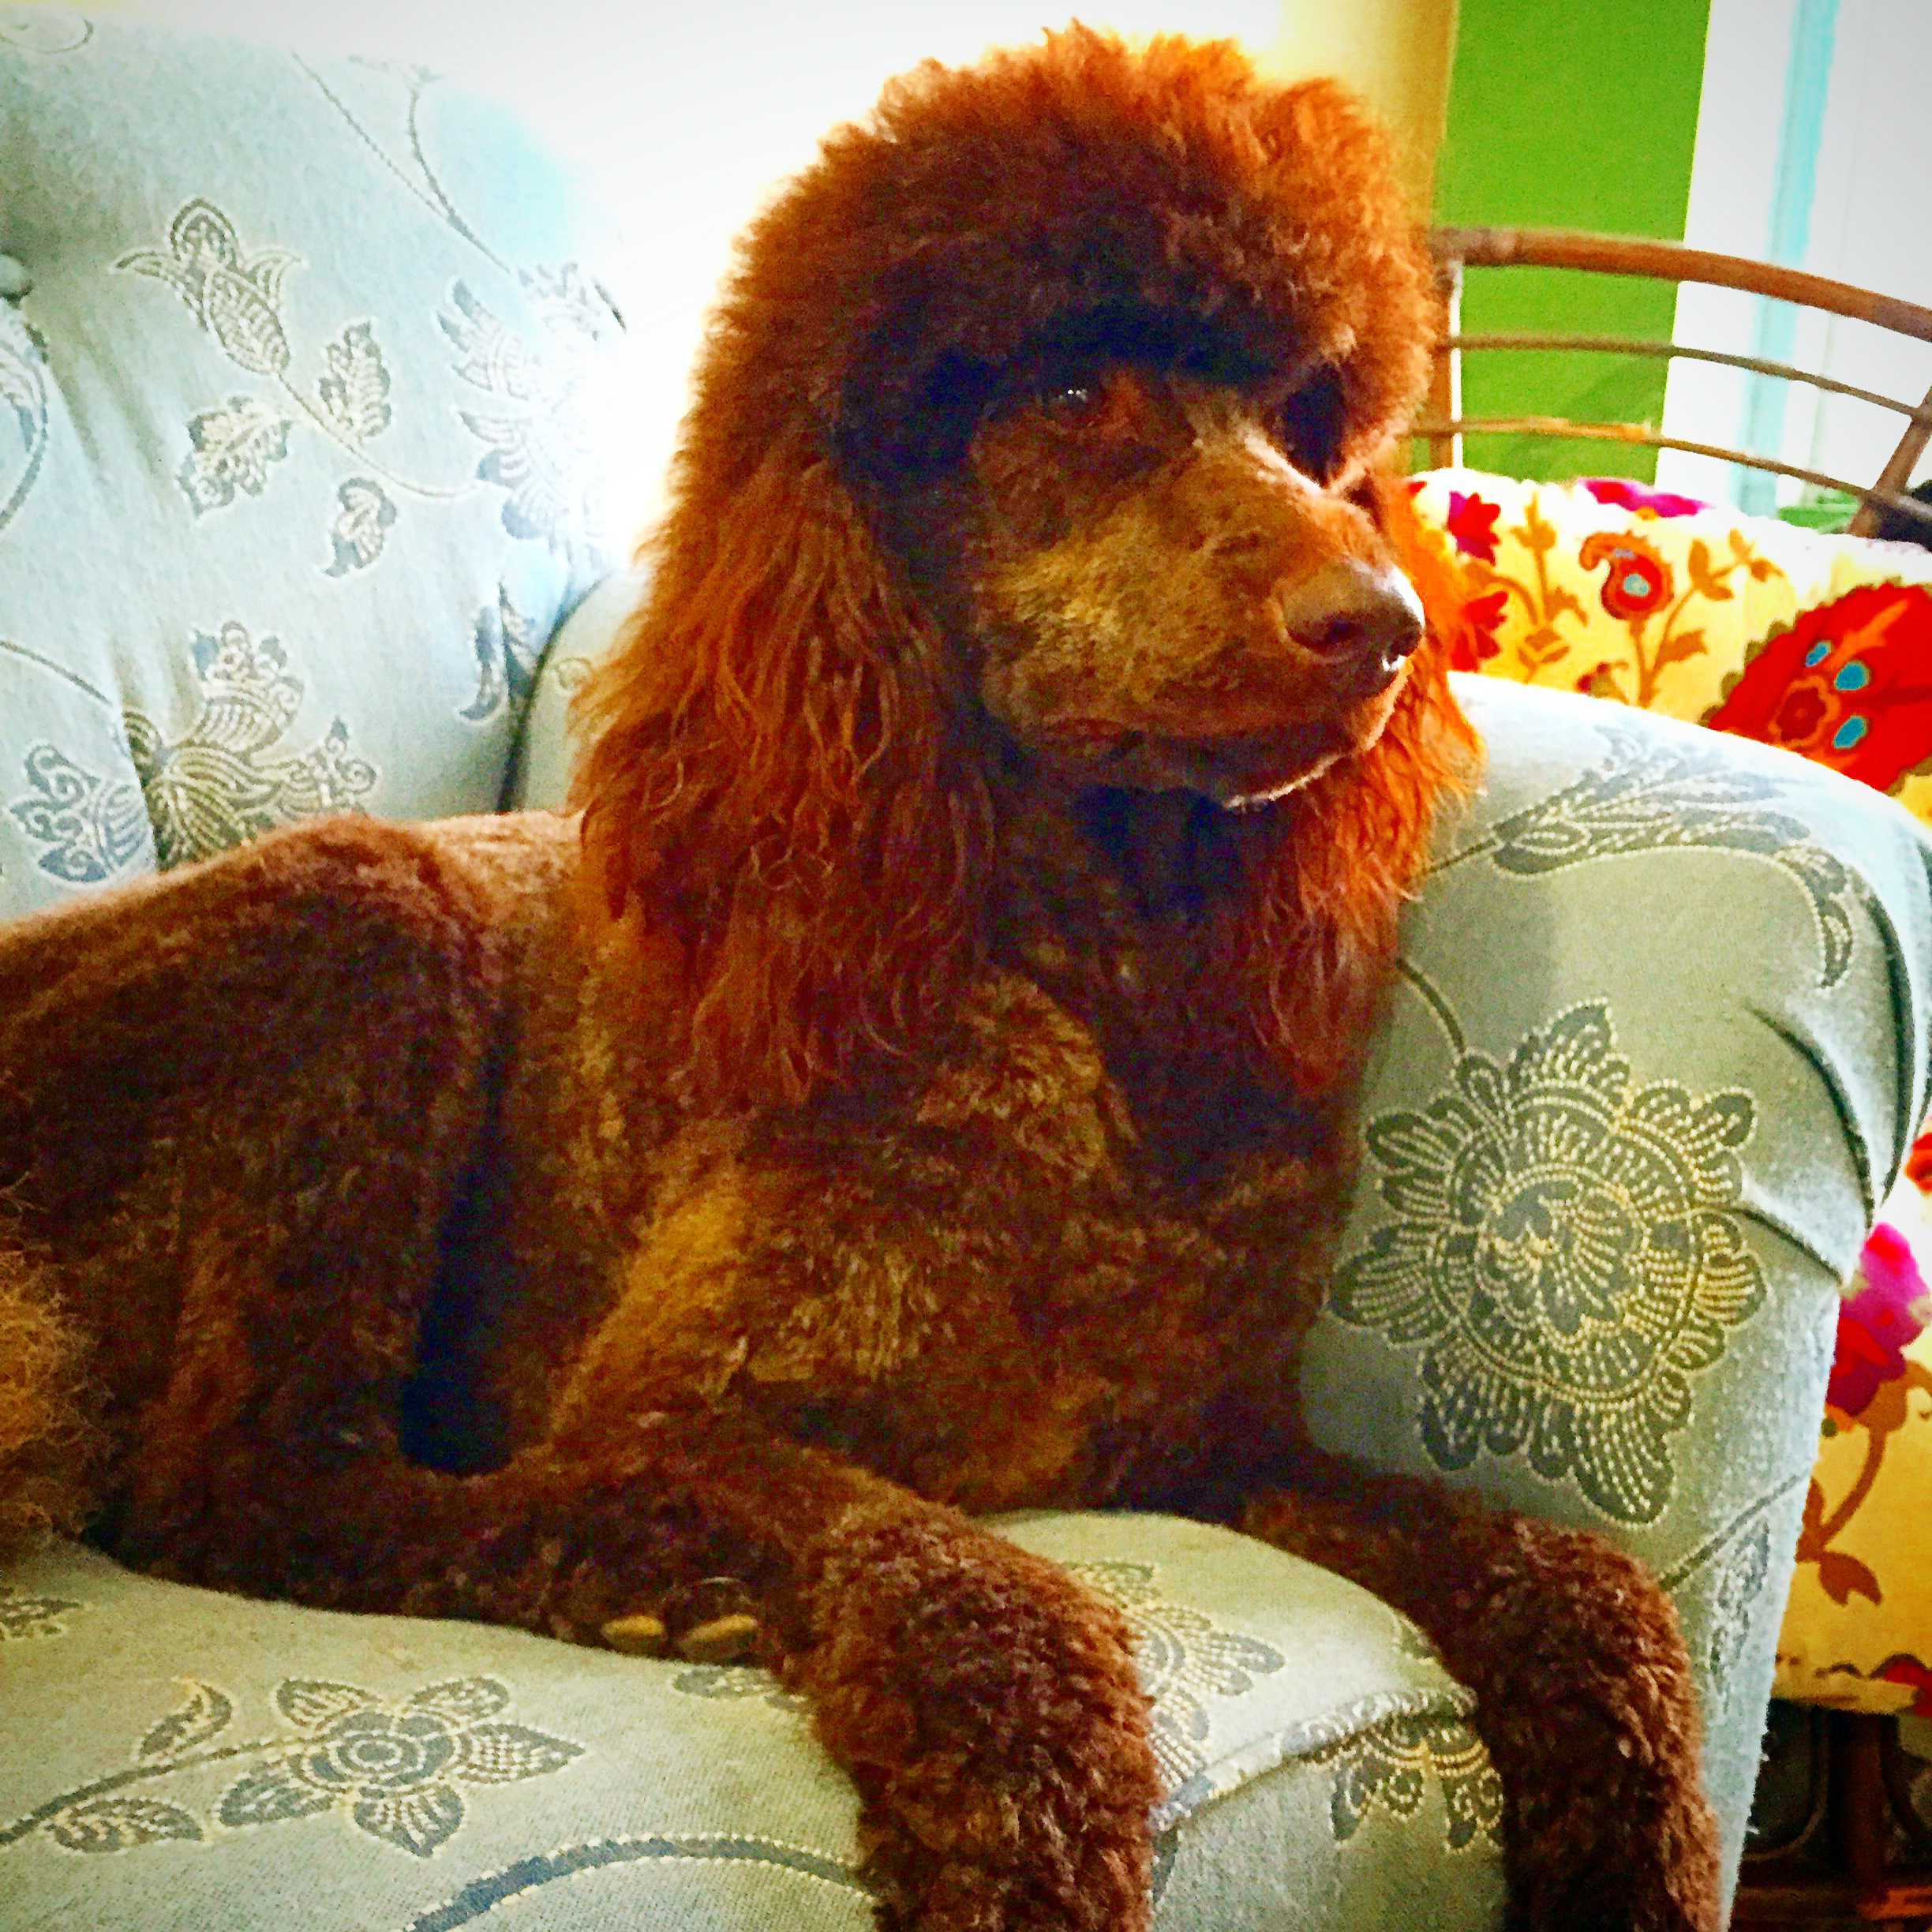 poodle-oncouch.jpg